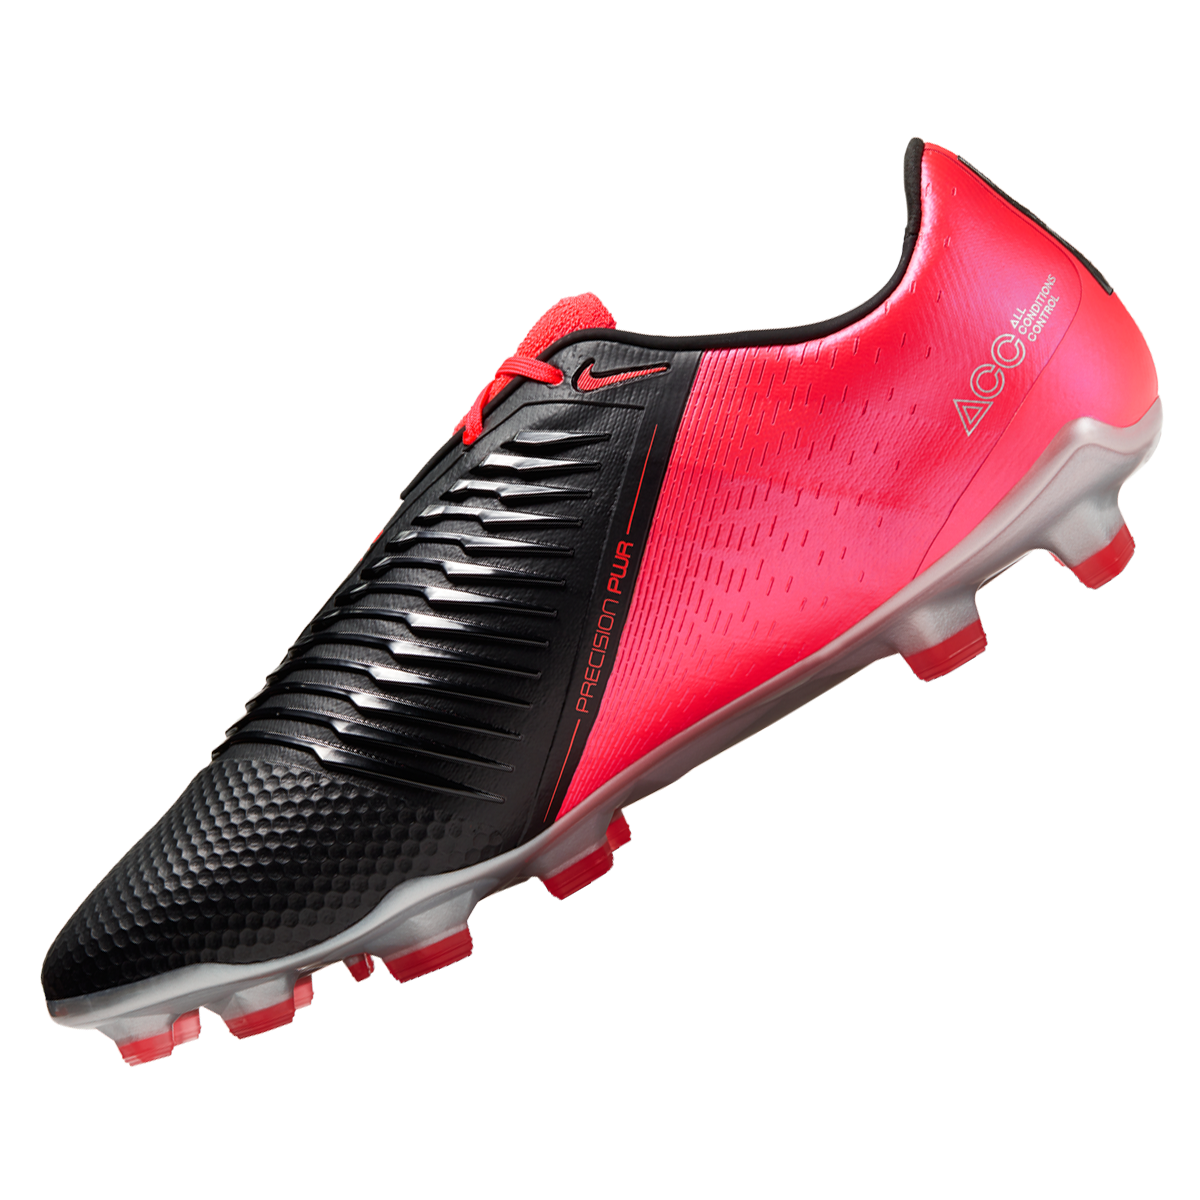 Chaussure de football Phantom Venom Elite FG de Nike rouge